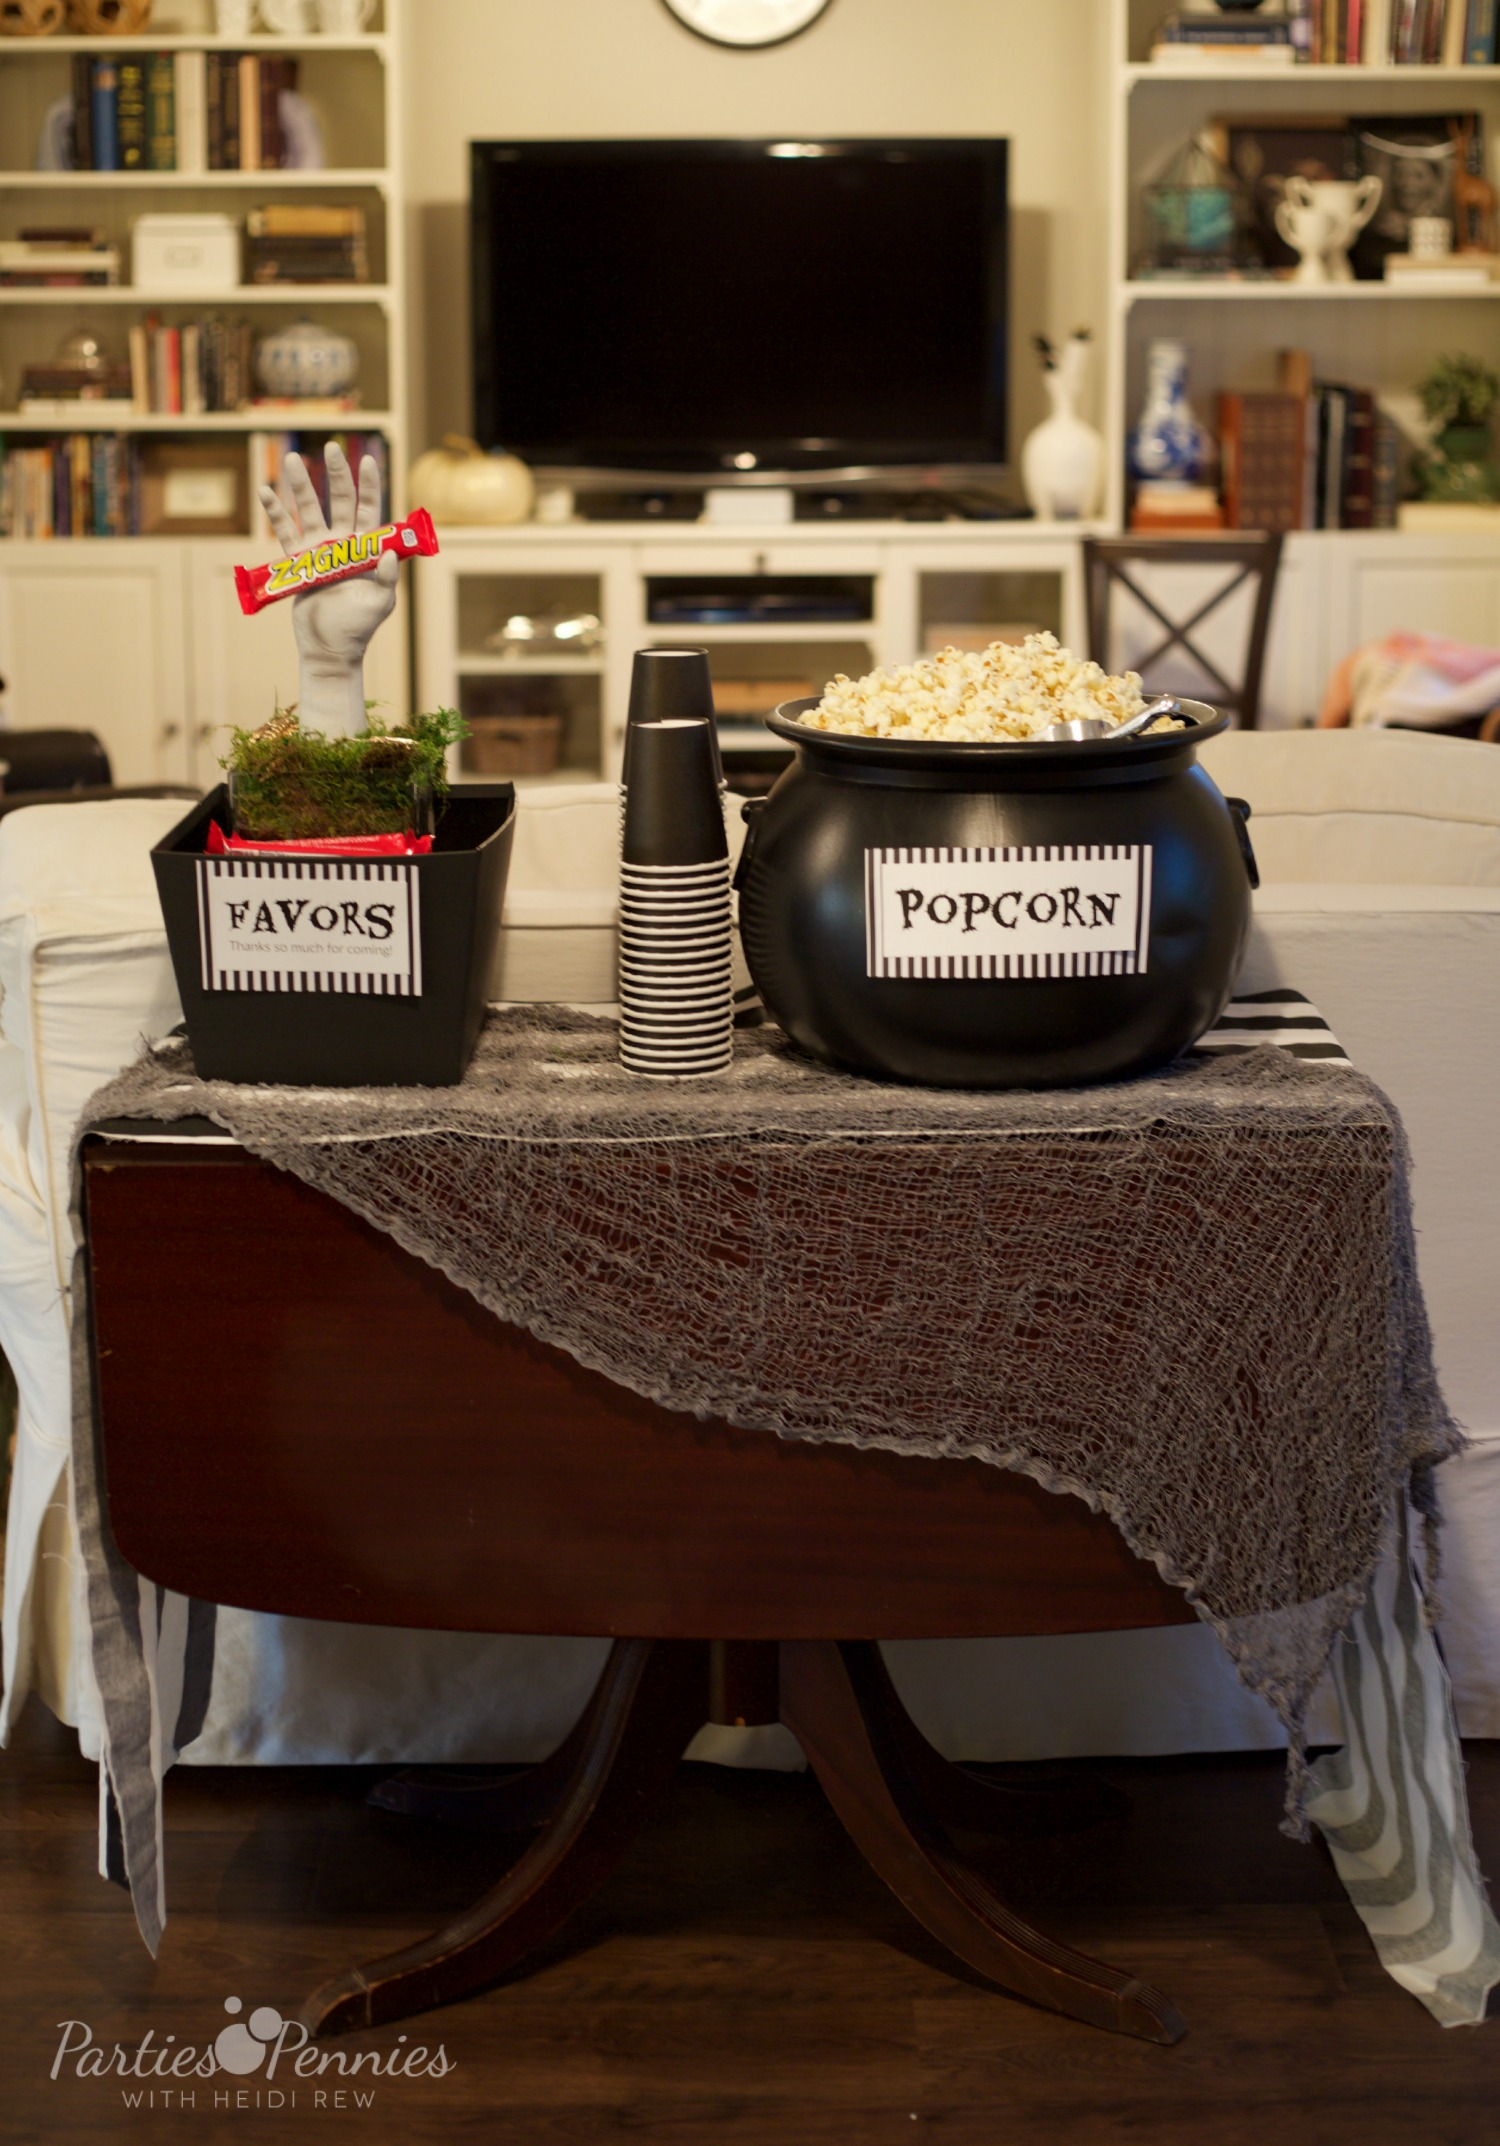 Beetlejuice Halloween Party | PartiesforPennies.com | Popcorn and Favors